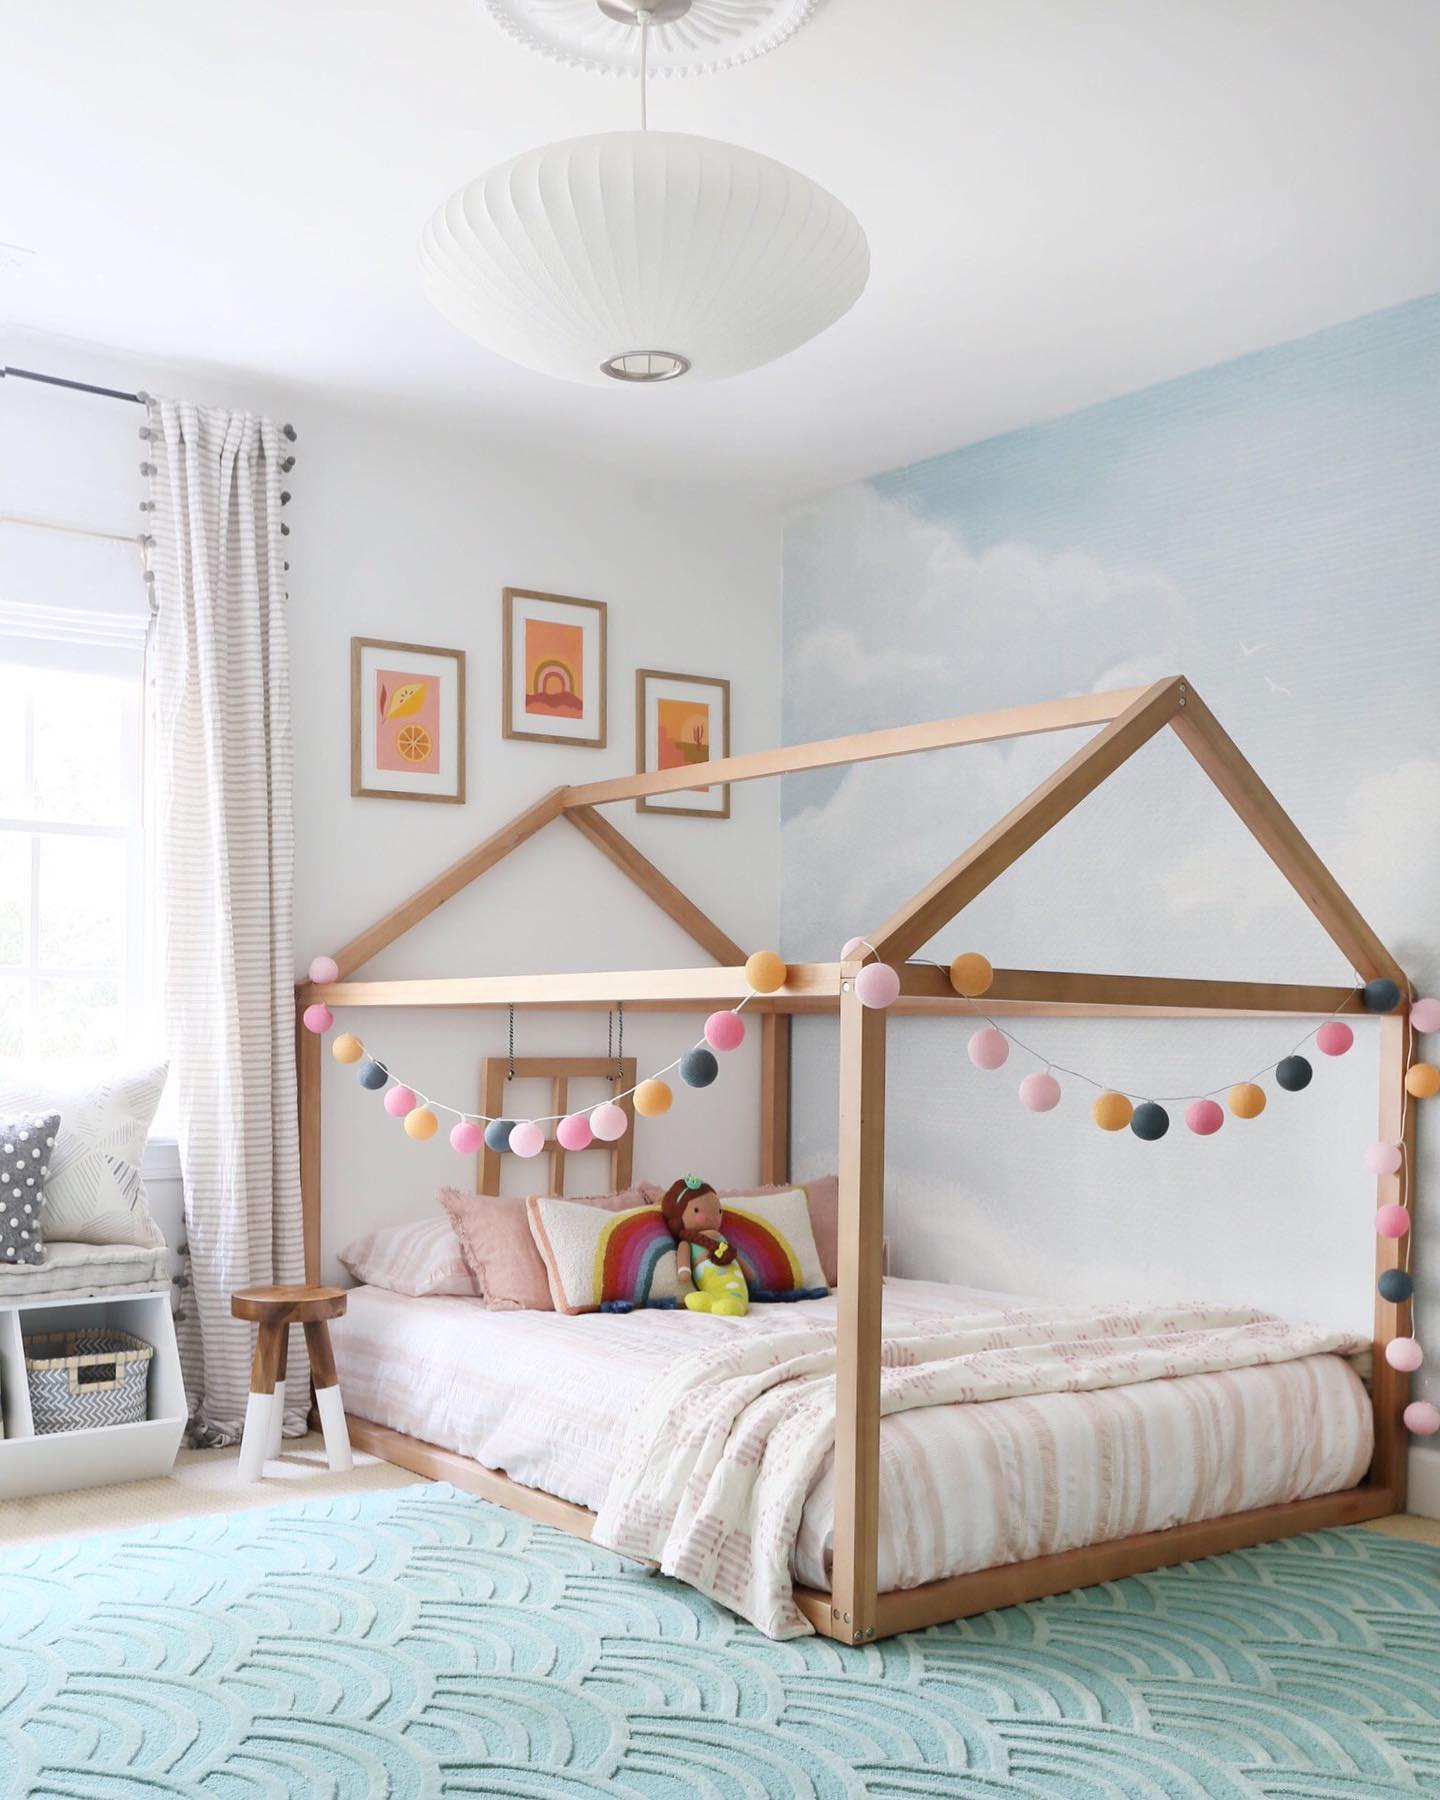 Dreamy colorful kids' room Instagram Post